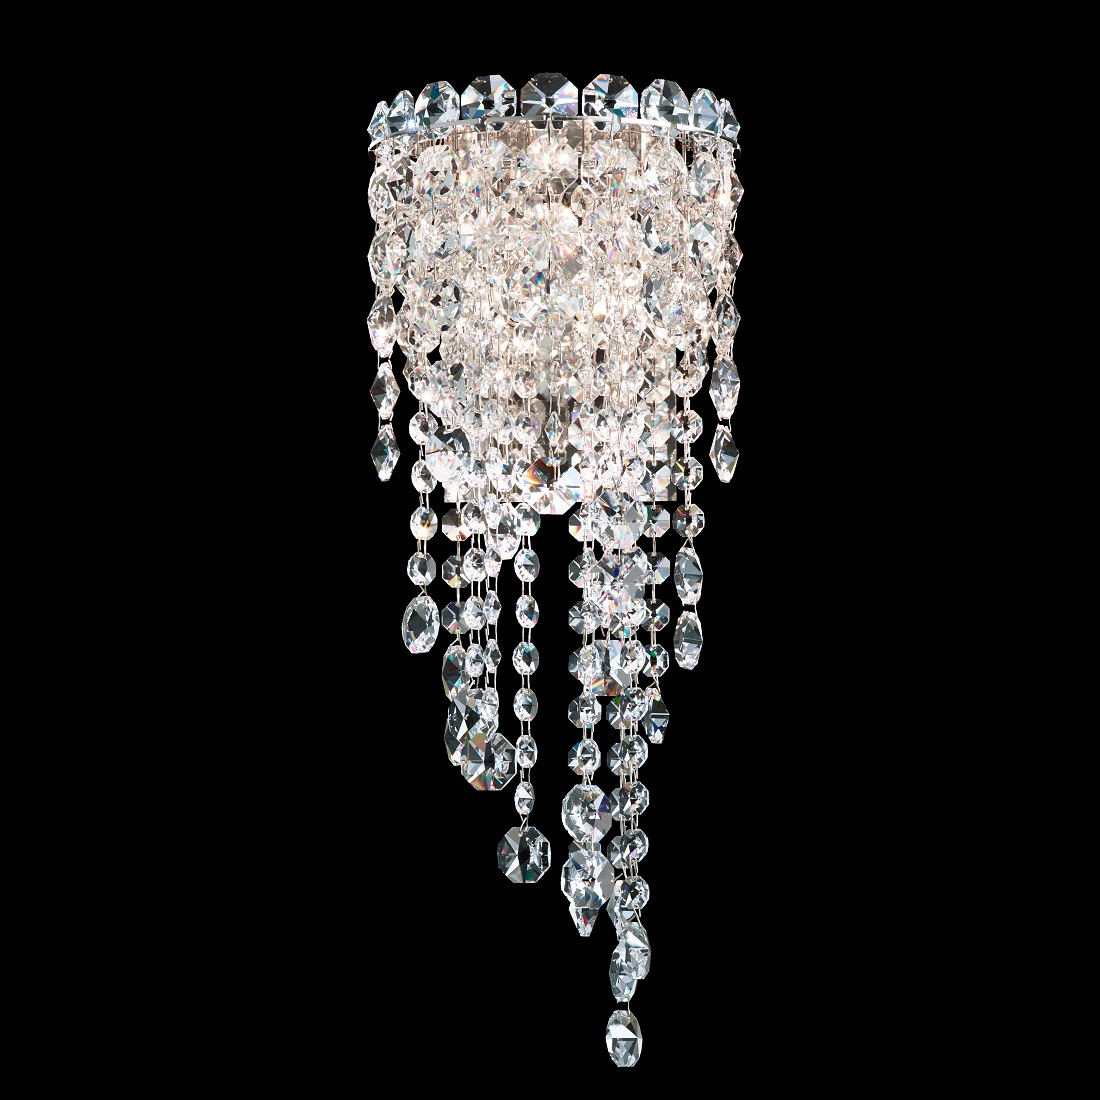 Schonbek Contemporary Crystal Chandeliers Brooklyn, New York – Furniture by ABD